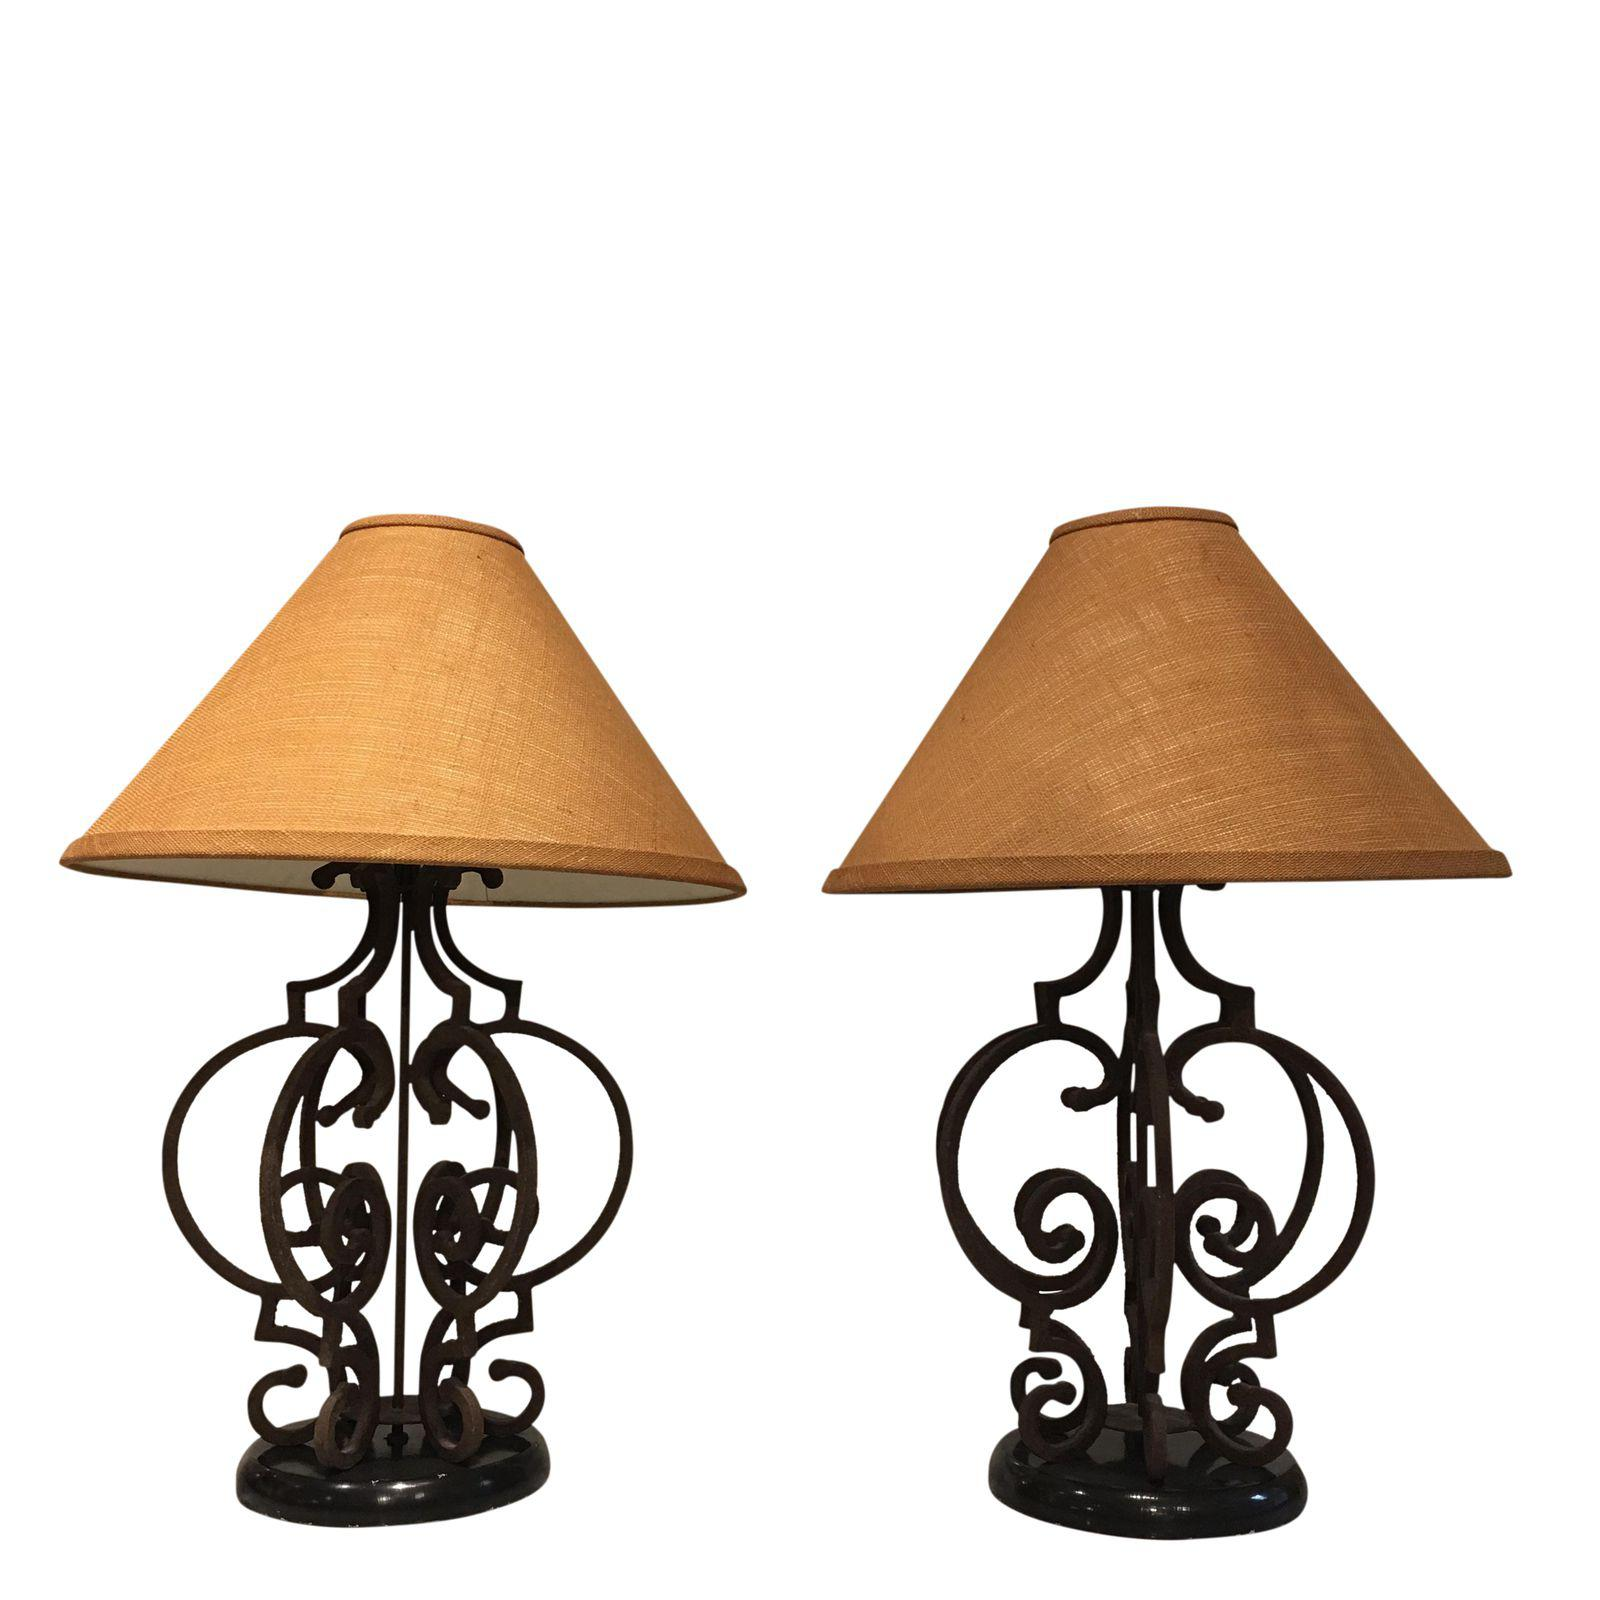 Rustic wrought iron table lamps lamp design ideas pair of ornate rustic wrought iron table lamps with burlap shades aloadofball Image collections